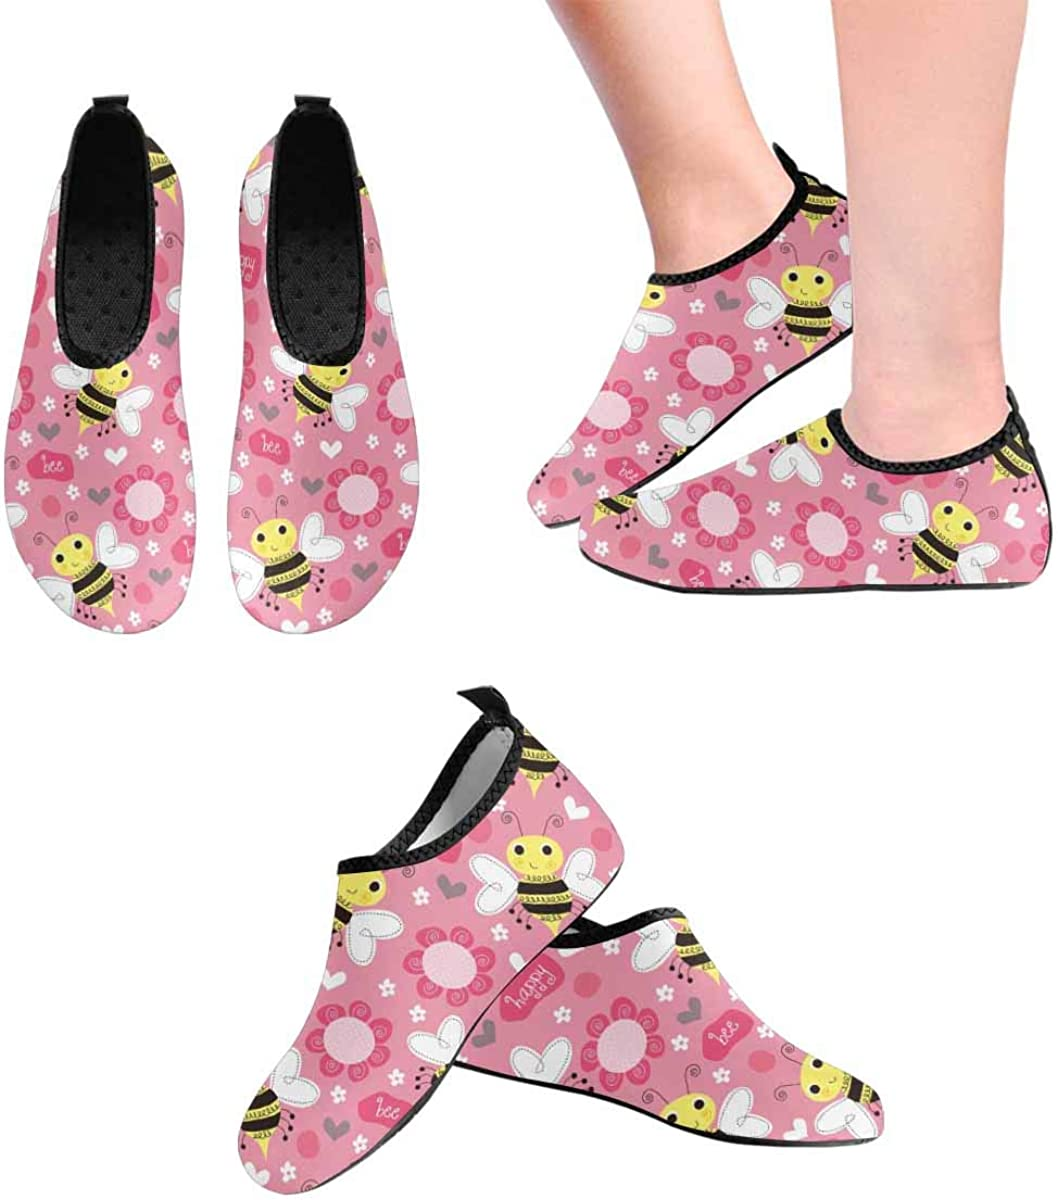 INTERESTPRINT Mens Water Sports Shoes Bee Flowers Barefoot Swim Shoes Quick Dry Beach Pool Socks